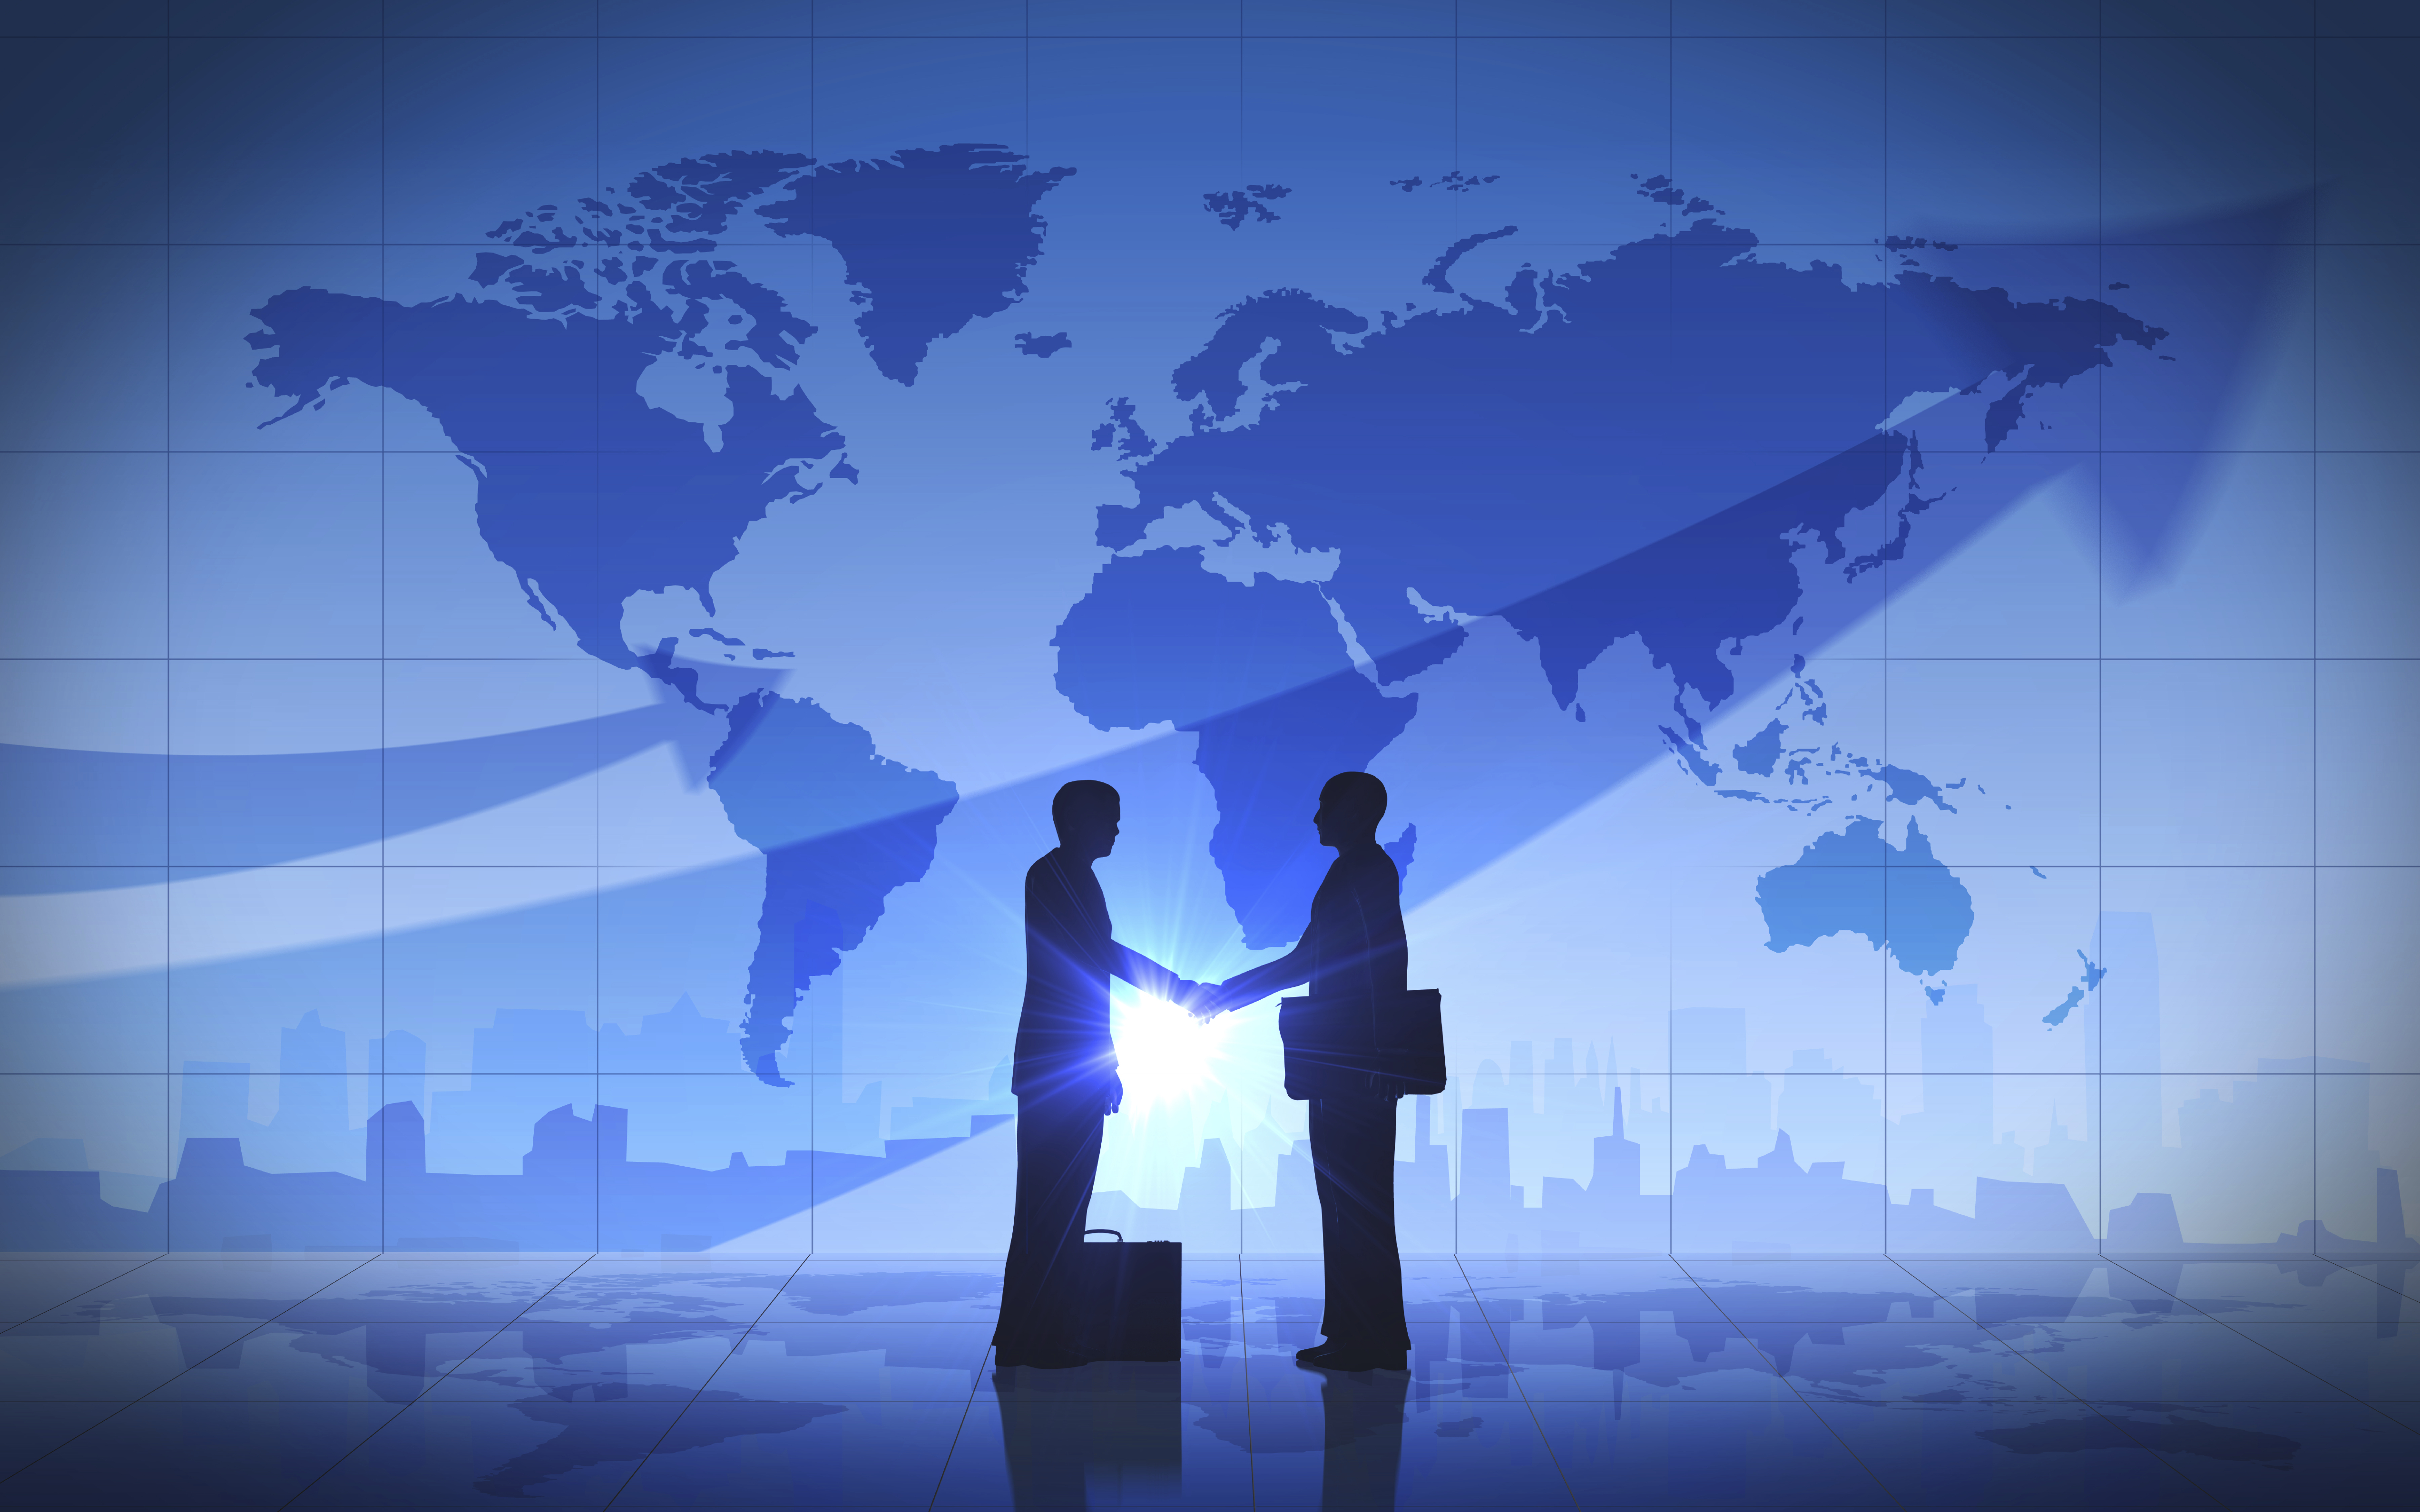 Business man shake hand silhouettes city world map global trade business man shake hand silhouettes city world map business man shake hand silhouettes city world map gumiabroncs Image collections